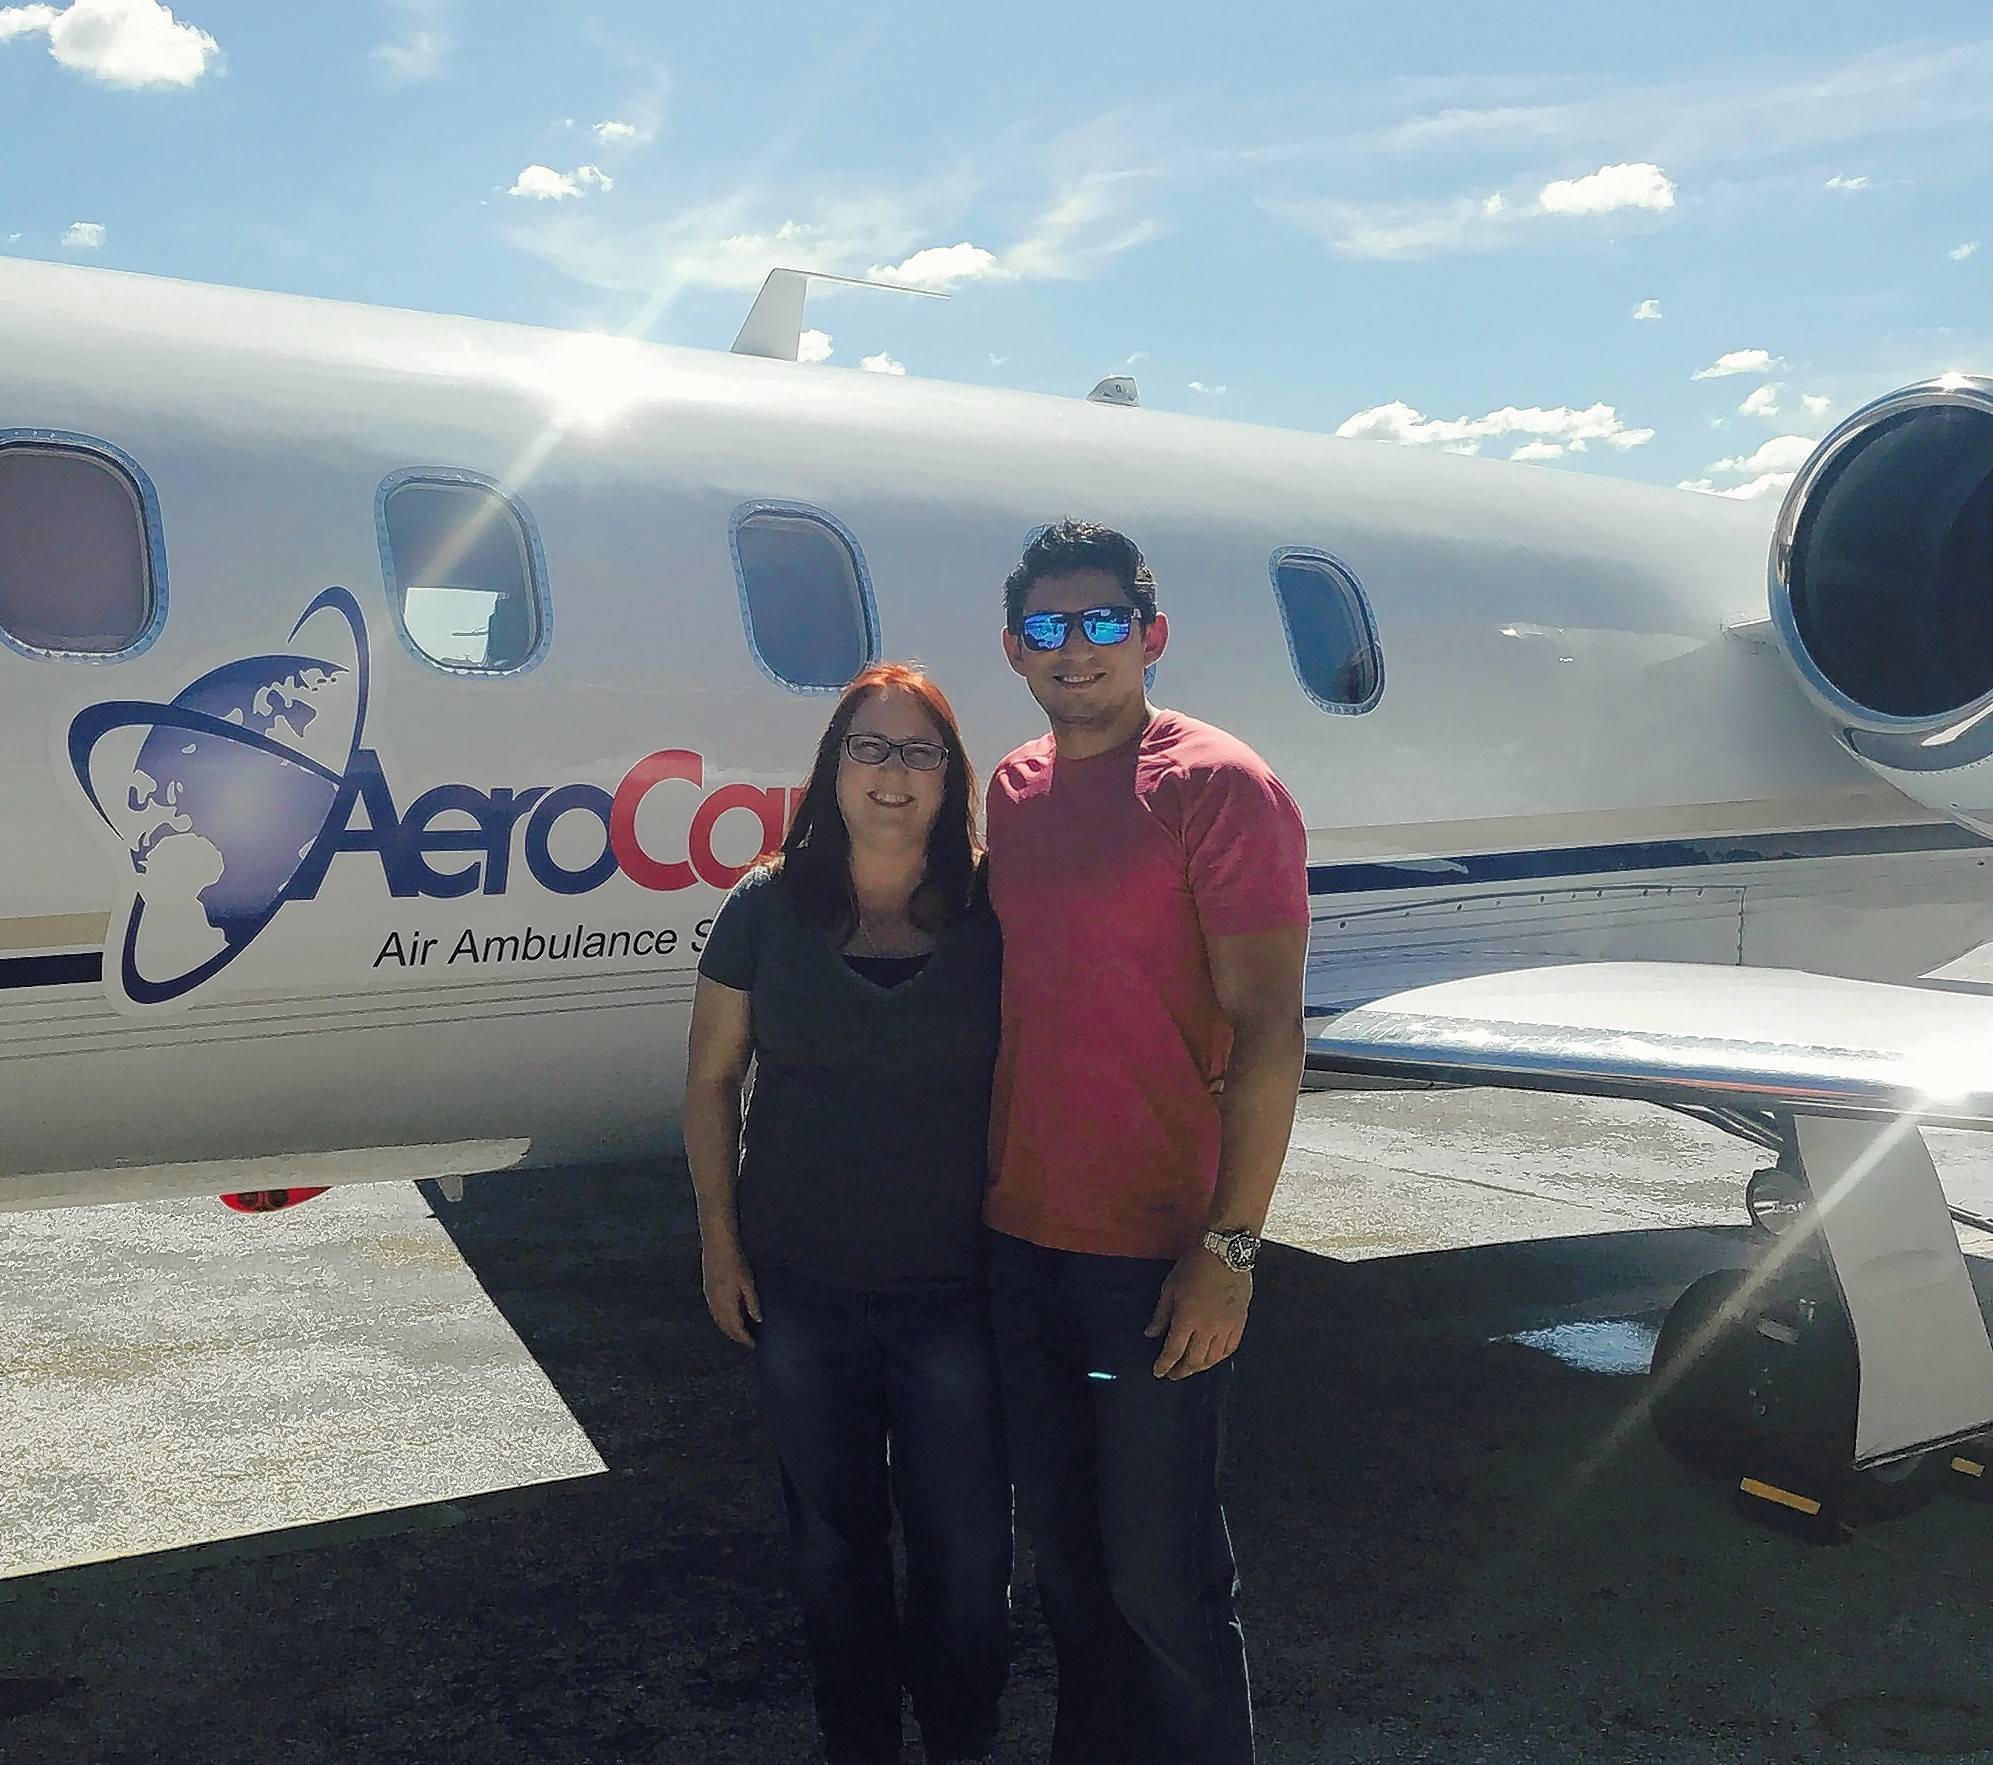 Nurse Camrai Damore and respiratory therapist Mark Puknaitis, who both work in Edward Hospital's Newborn Intensive Care Unit, traveled to St. Croix, U.S. Virgin Islands on a mission to provide medical relief to hurricane victims.